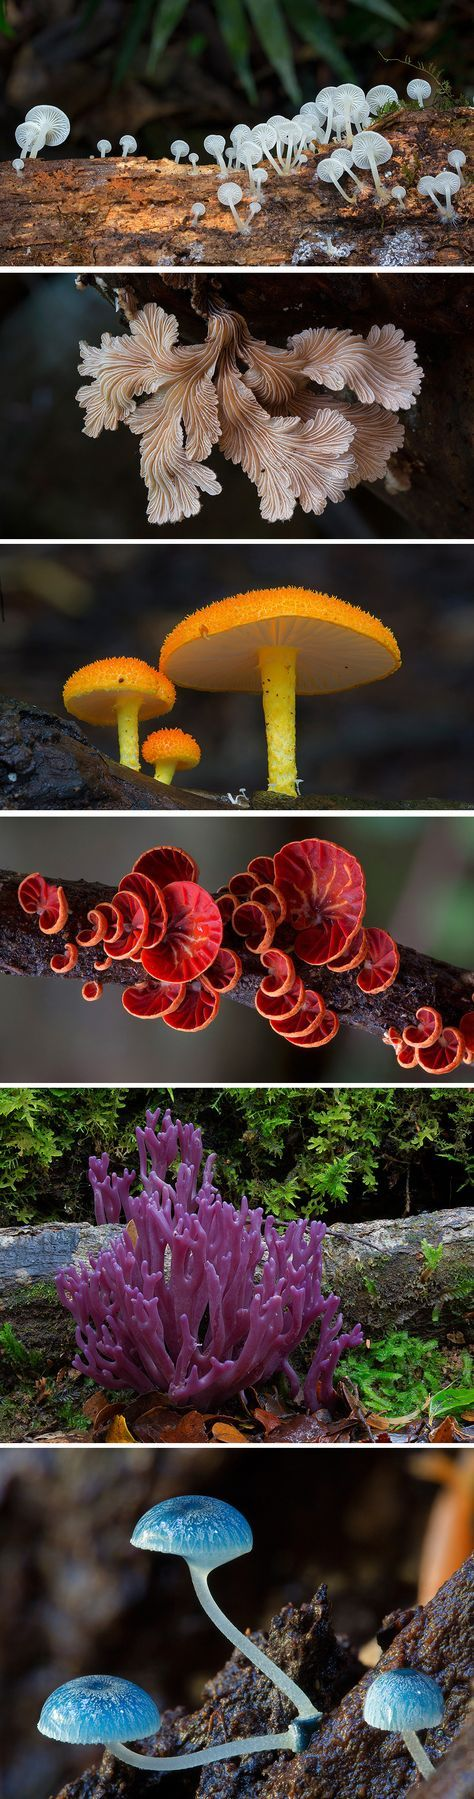 Radically Diverse Australian Fungi Photographed by Steve Axford  http://www.thisiscolossal.com/2015/05/radically-diverse-australian-fungi-photographed-by-steve-axford/